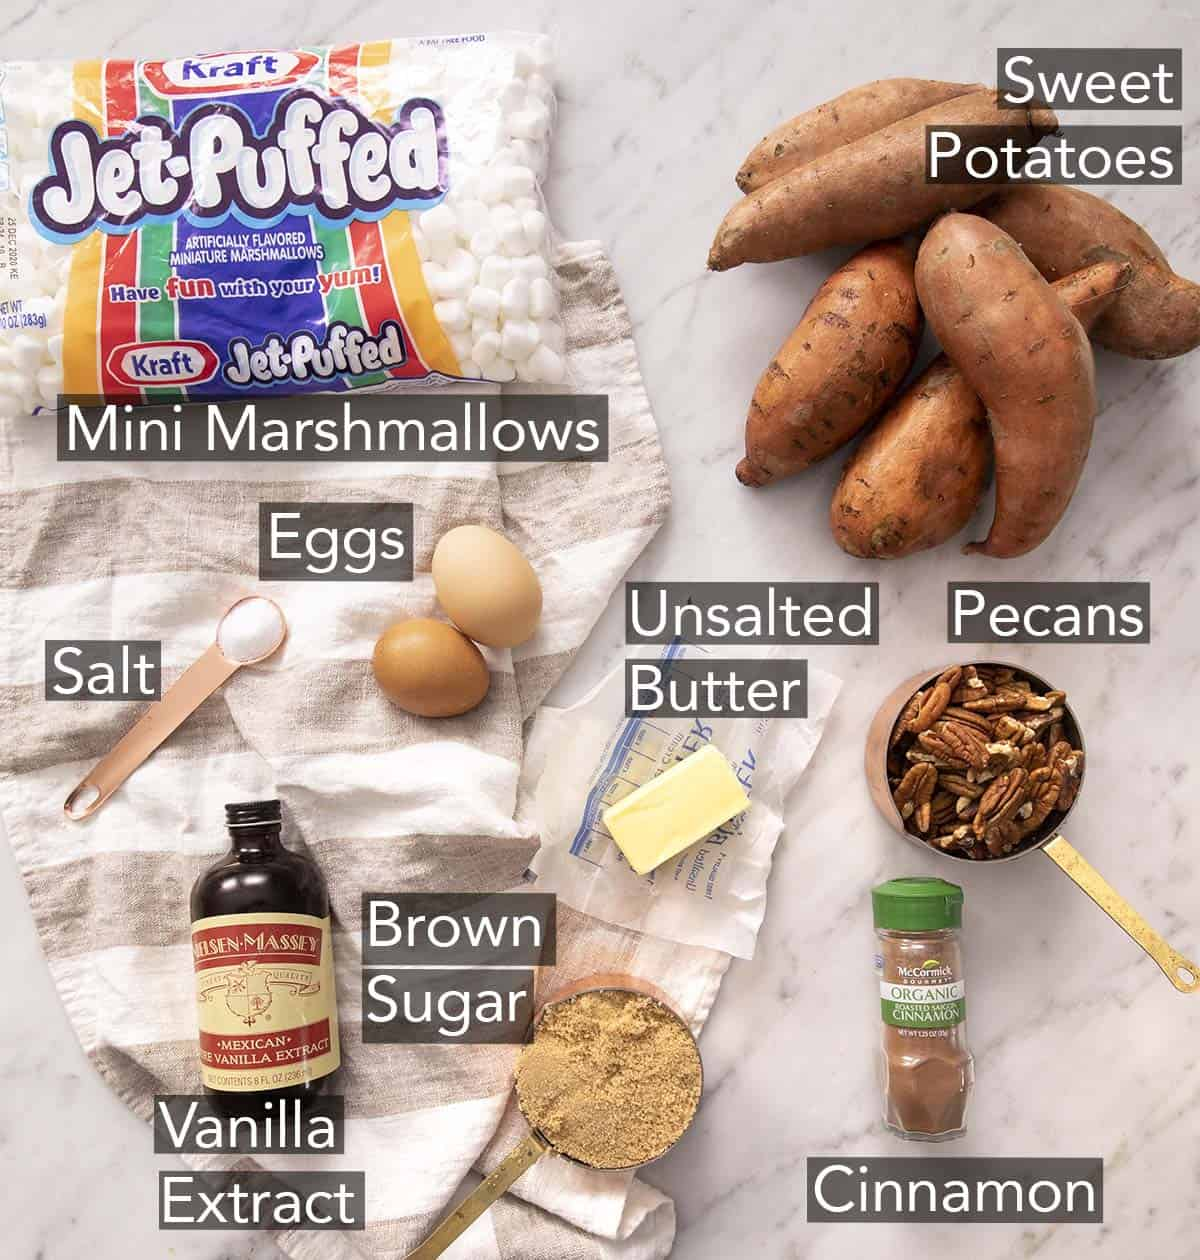 Ingredients for making Sweet Potato Casserole on a marble counter.